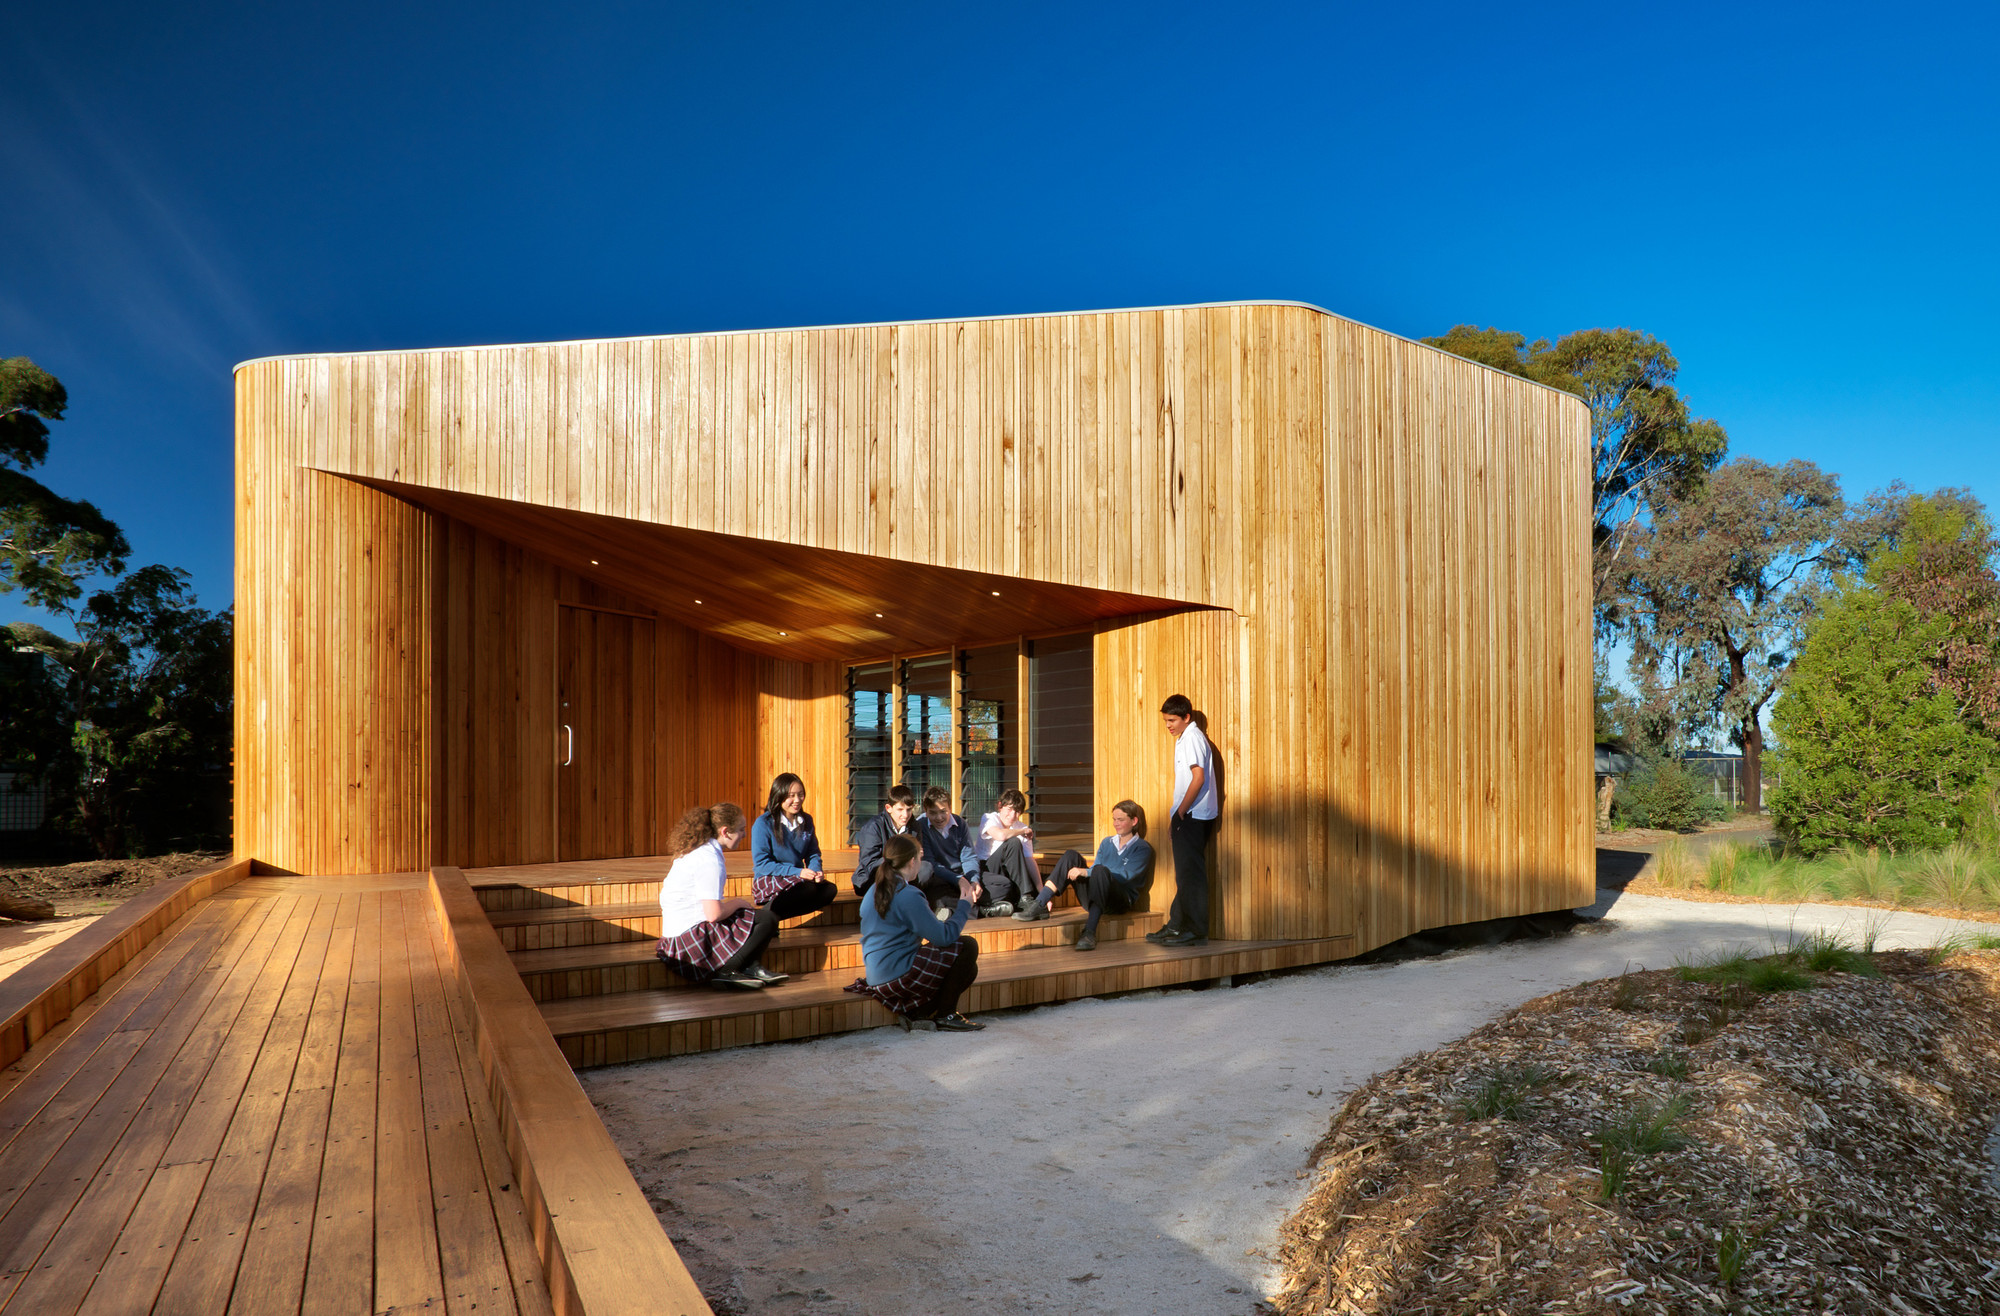 Bentleigh Secondary College Meditation and Indigenous Cultural Centre / dwpIsuters, © Emma Cross